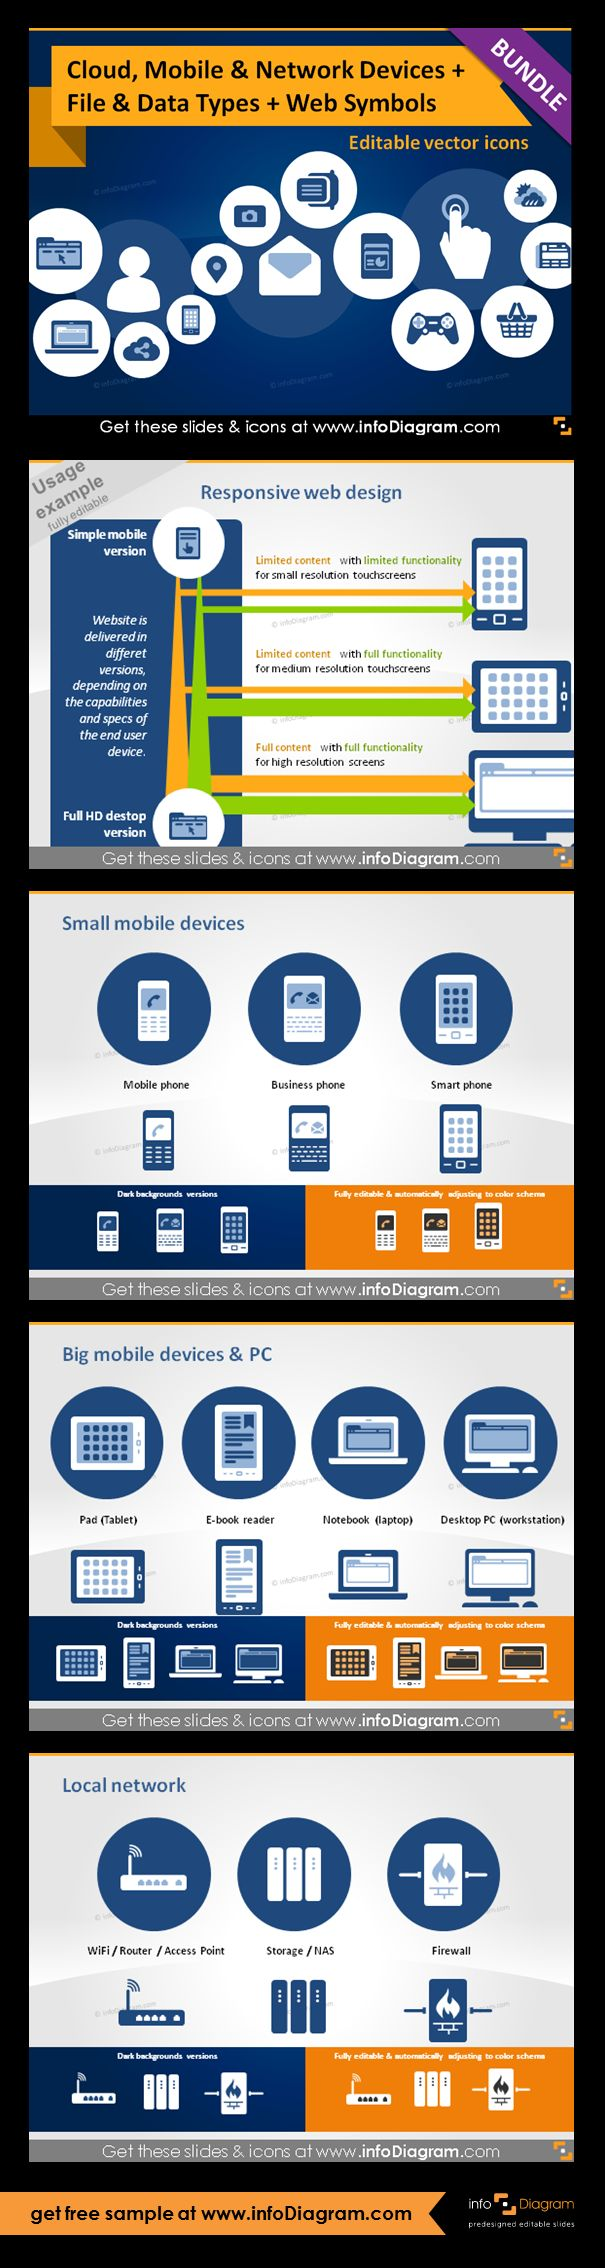 IT concepts. Small mobile devices icon pictograms: Mobile phone, Business phone, Smartphone. Big mobile devices and Personal Computer icon pictograms: Pad, Tablet, ebook reader, notebook laptop, desktop pc ( workstation). Local network icon pictograms: Wi-fi router, Access Point, Storage, NAS, Firewall. Usage example on Responsive web design schema PowerPoint diagram.